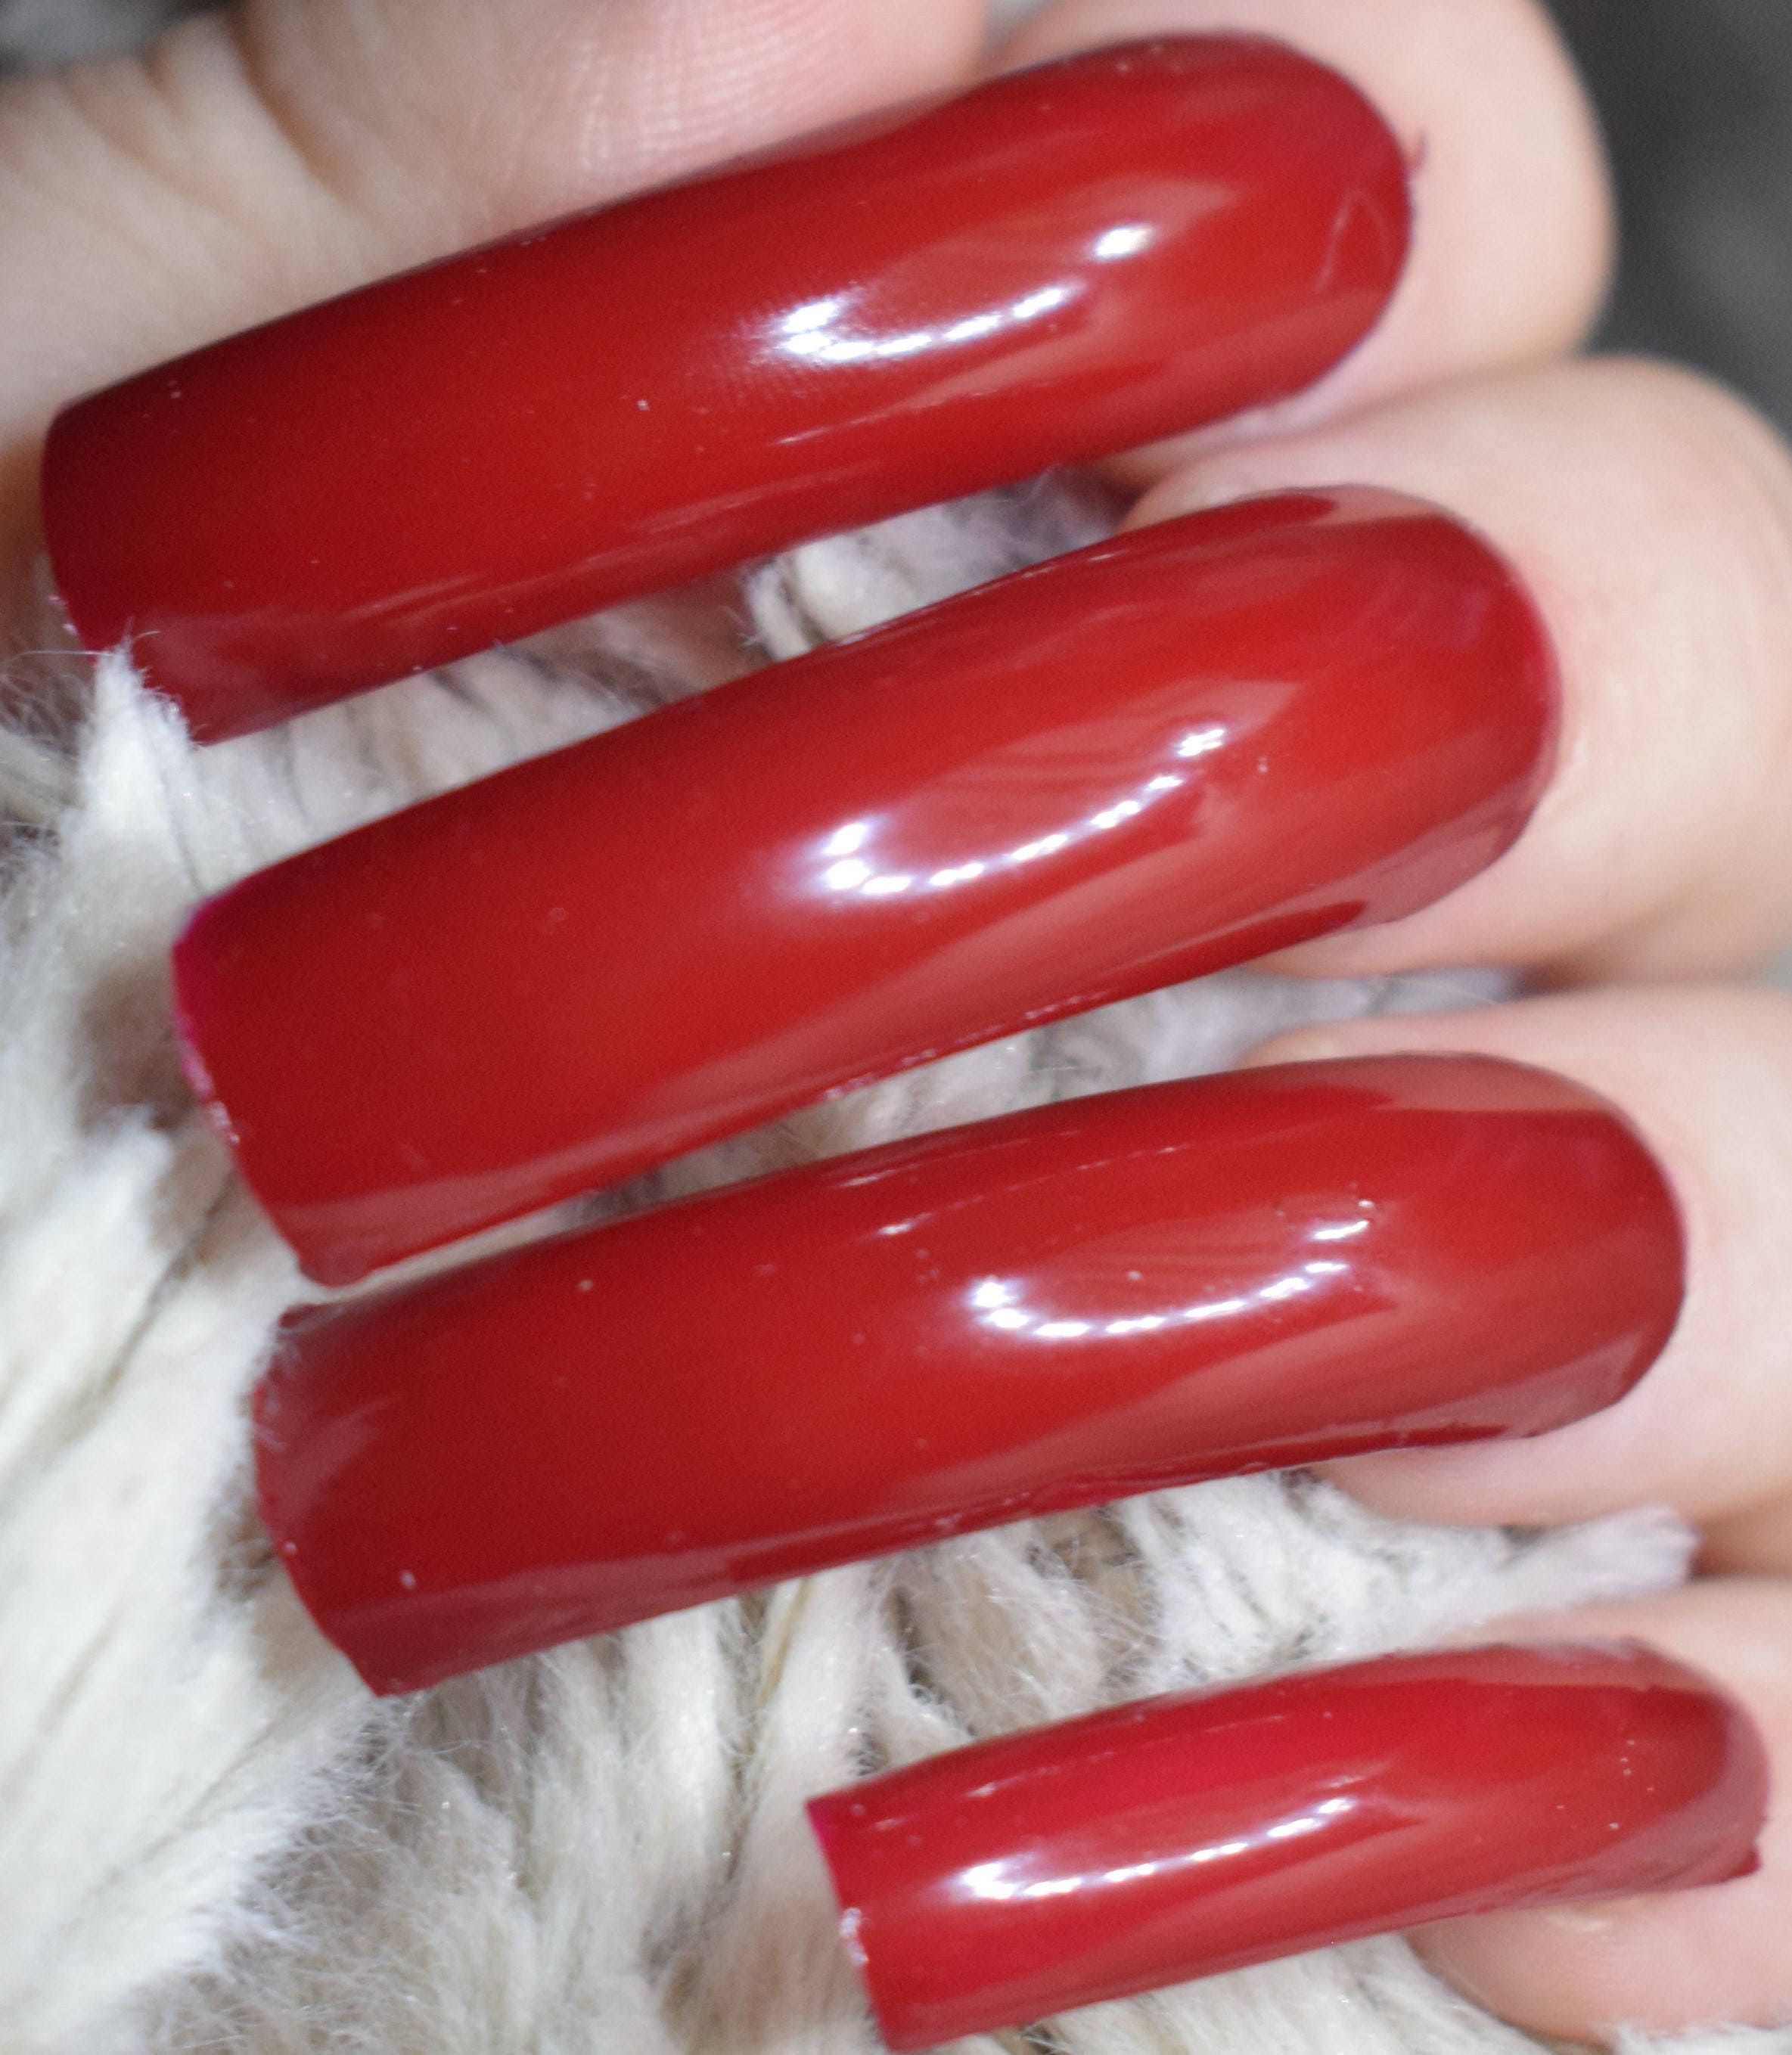 Red Fake Nails, Extra Long Curved False Nails, Hand Painted Nails ...